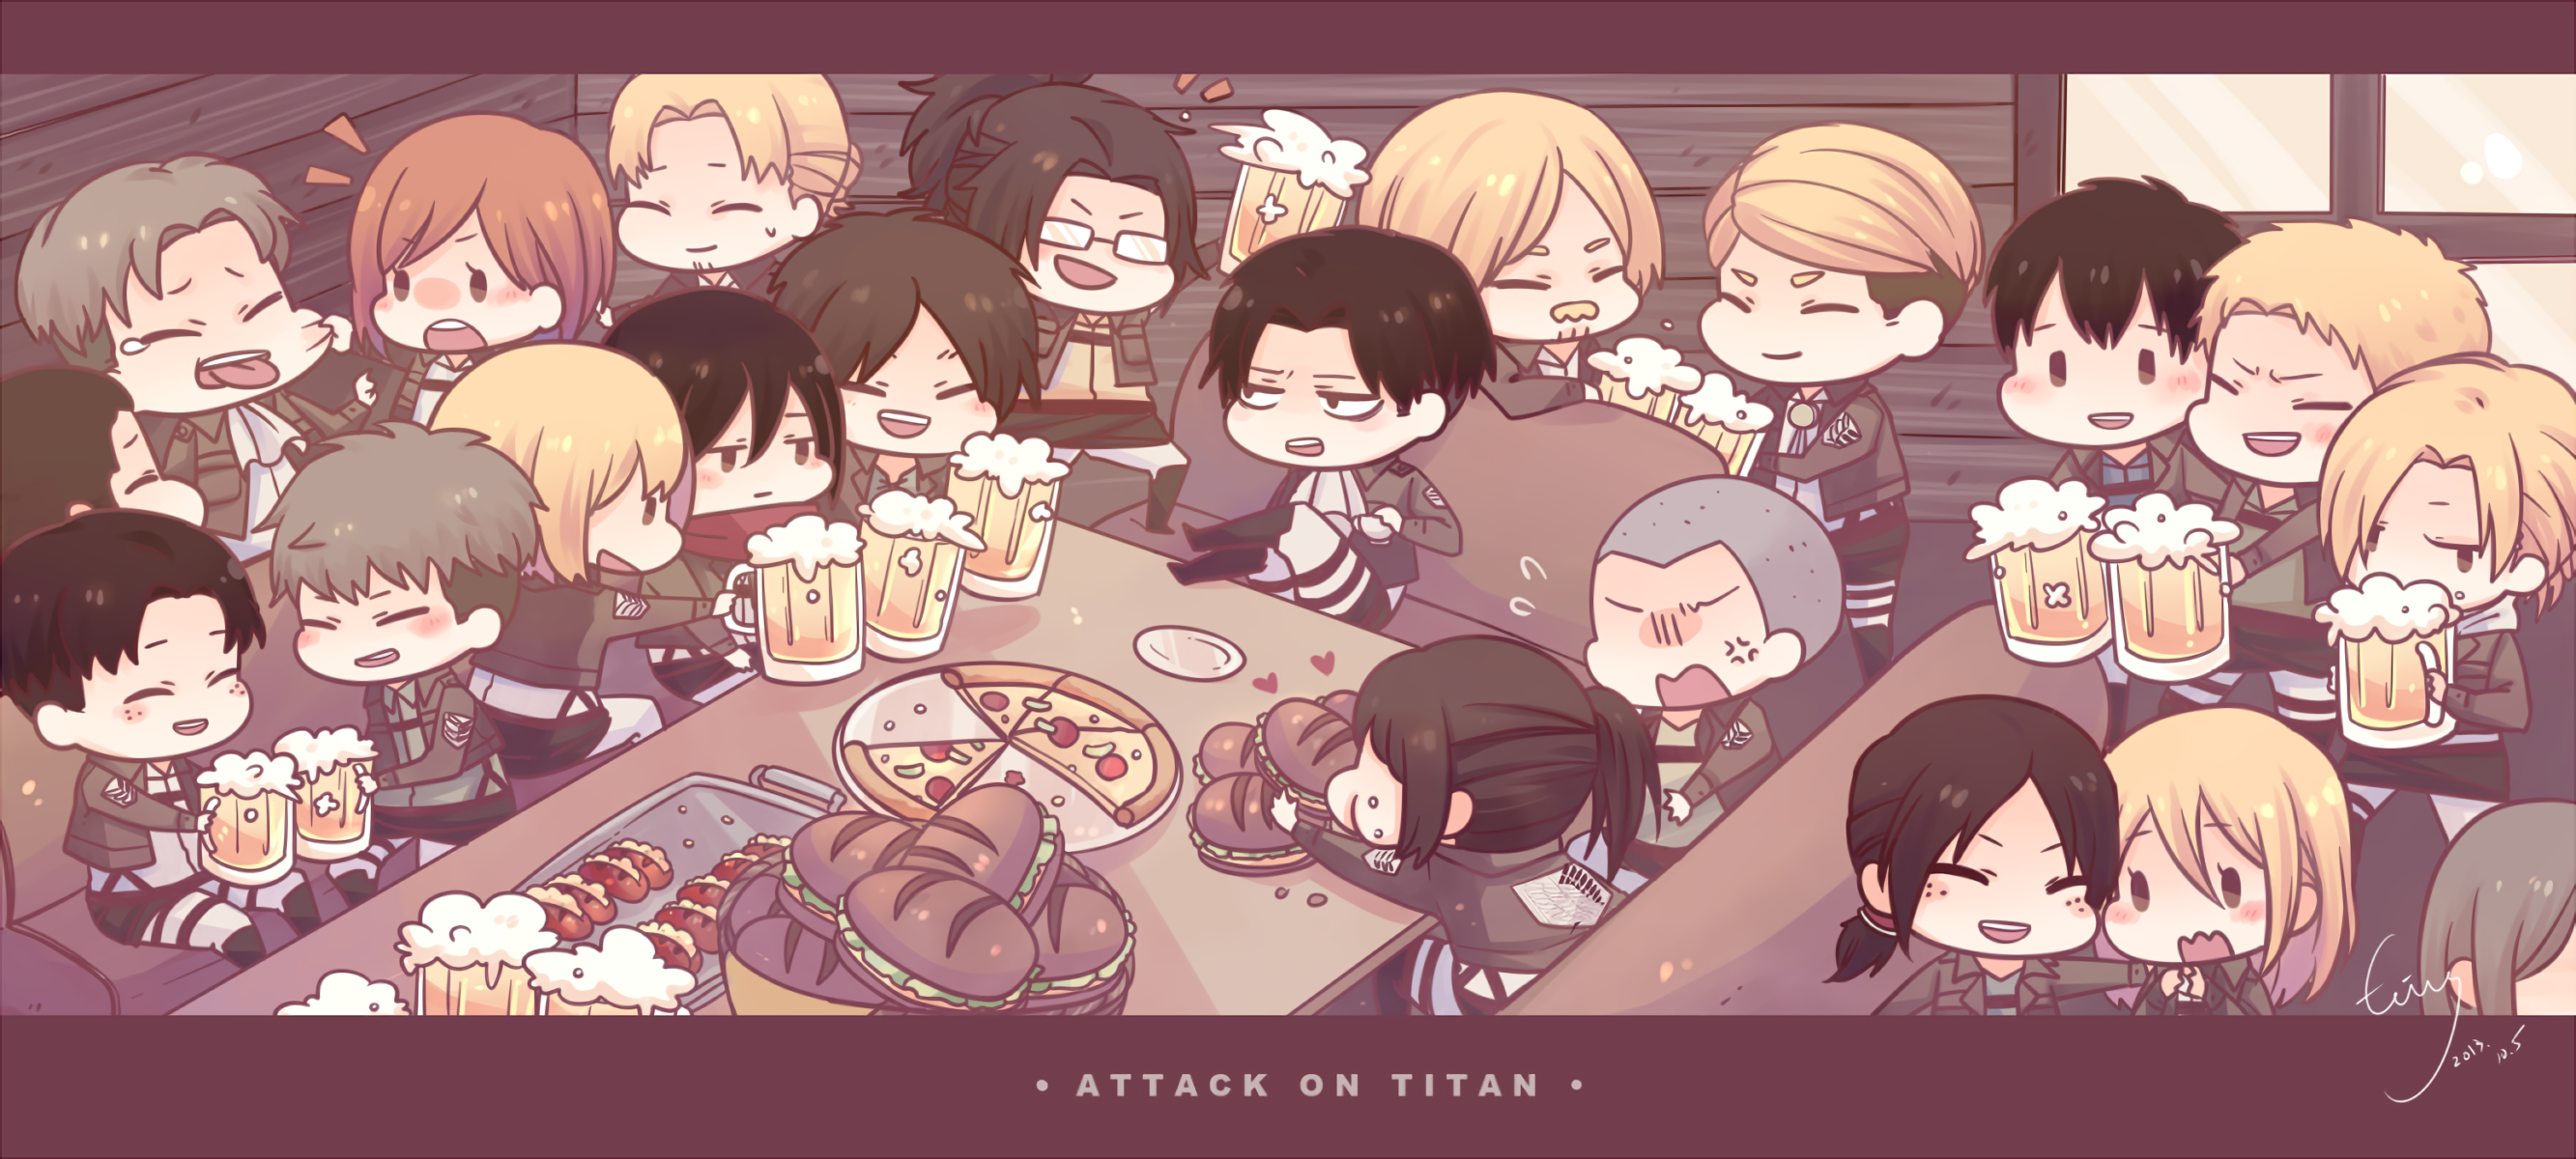 Attack On Titan Squad Party Hd Wallpaper Background Image